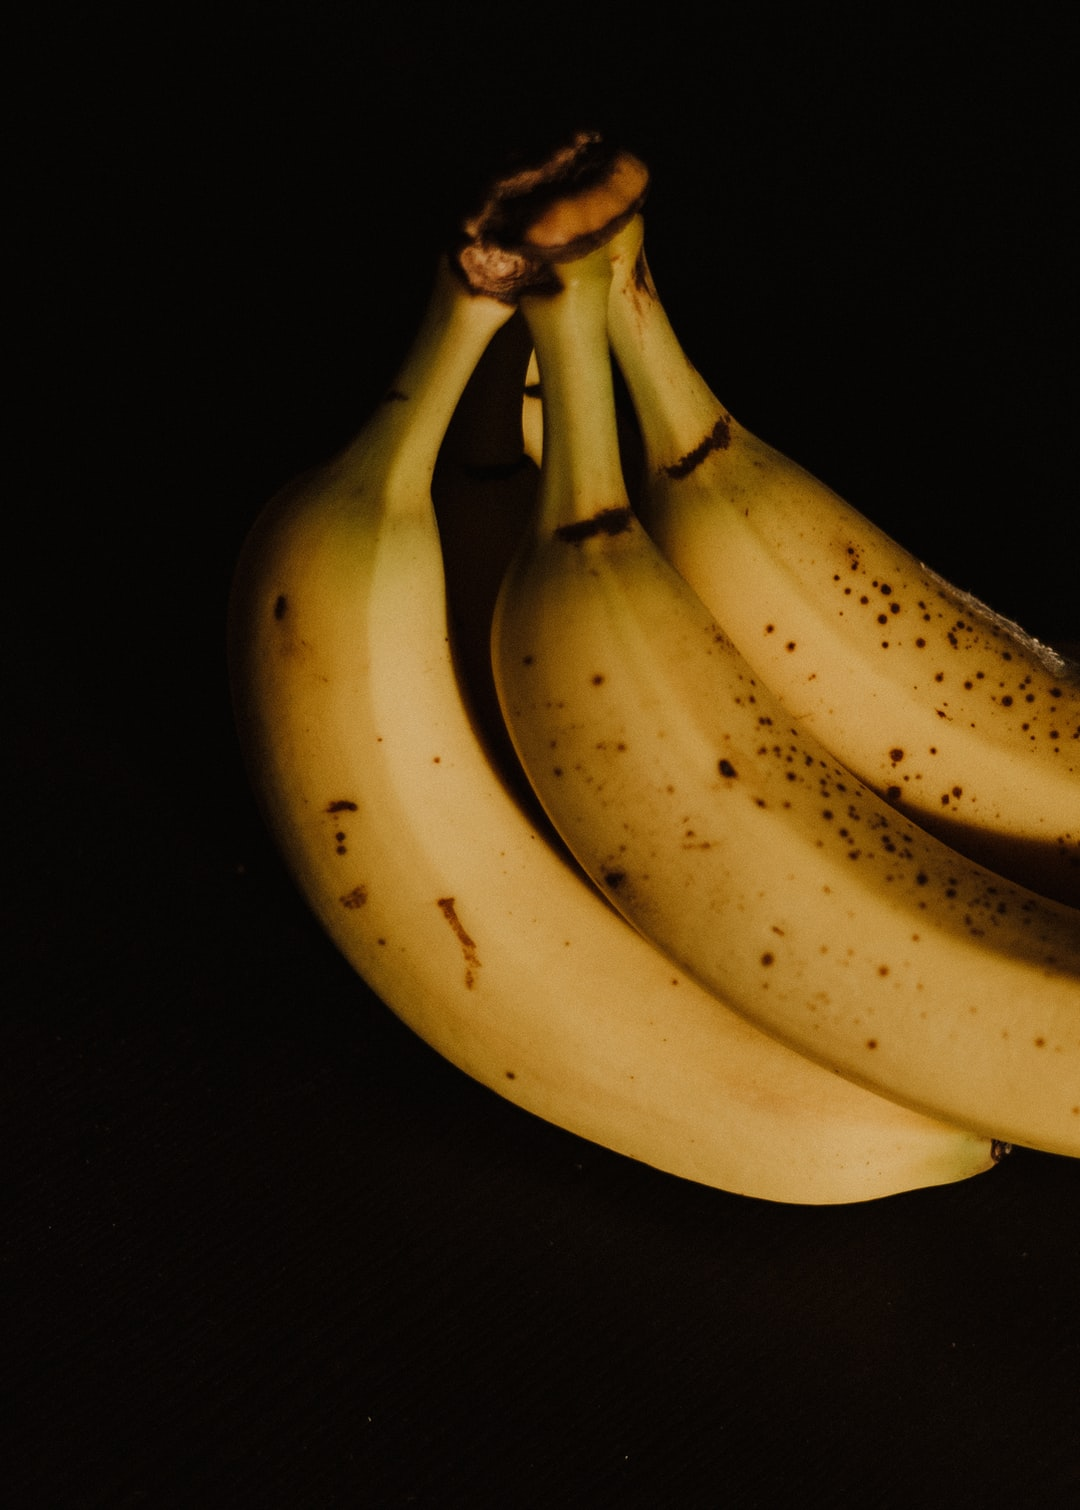 A close up of a spotted banana